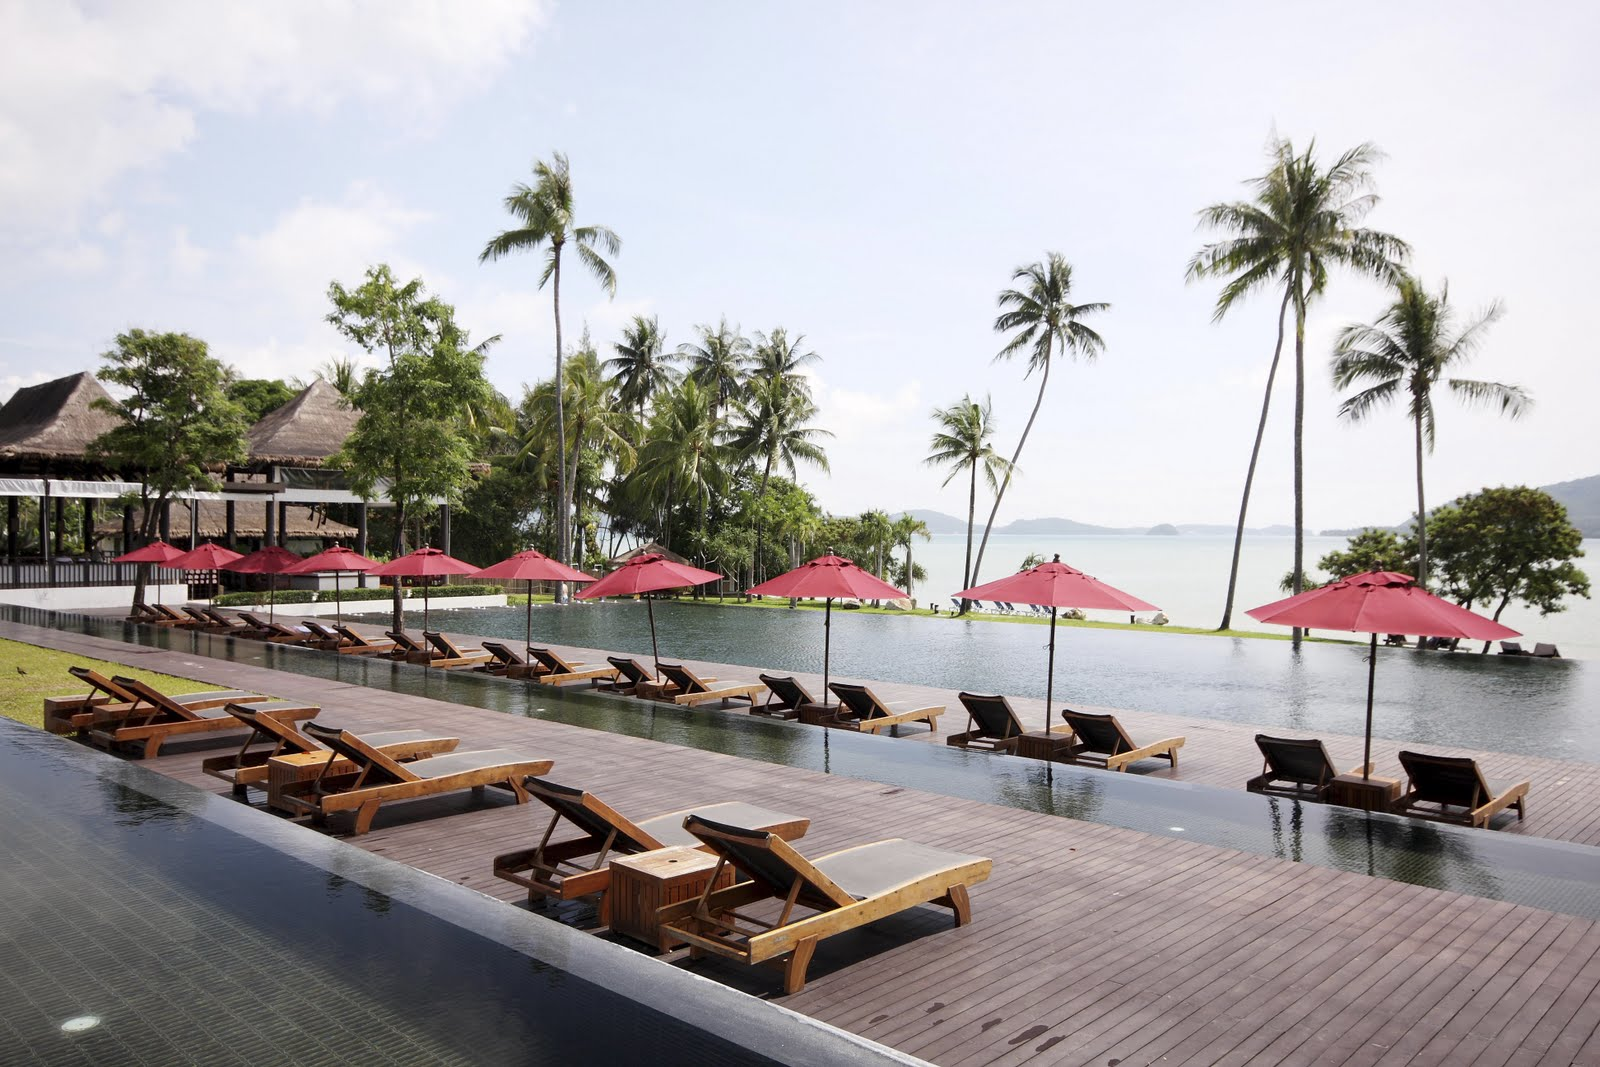 http://4.bp.blogspot.com/-sr2O4HE_aS4/Tidnoos_uLI/AAAAAAAAQNM/g-7VkIaMfu8/s1600/006_The+Pool+The+Vijitt+Resort+Phuket.jpg